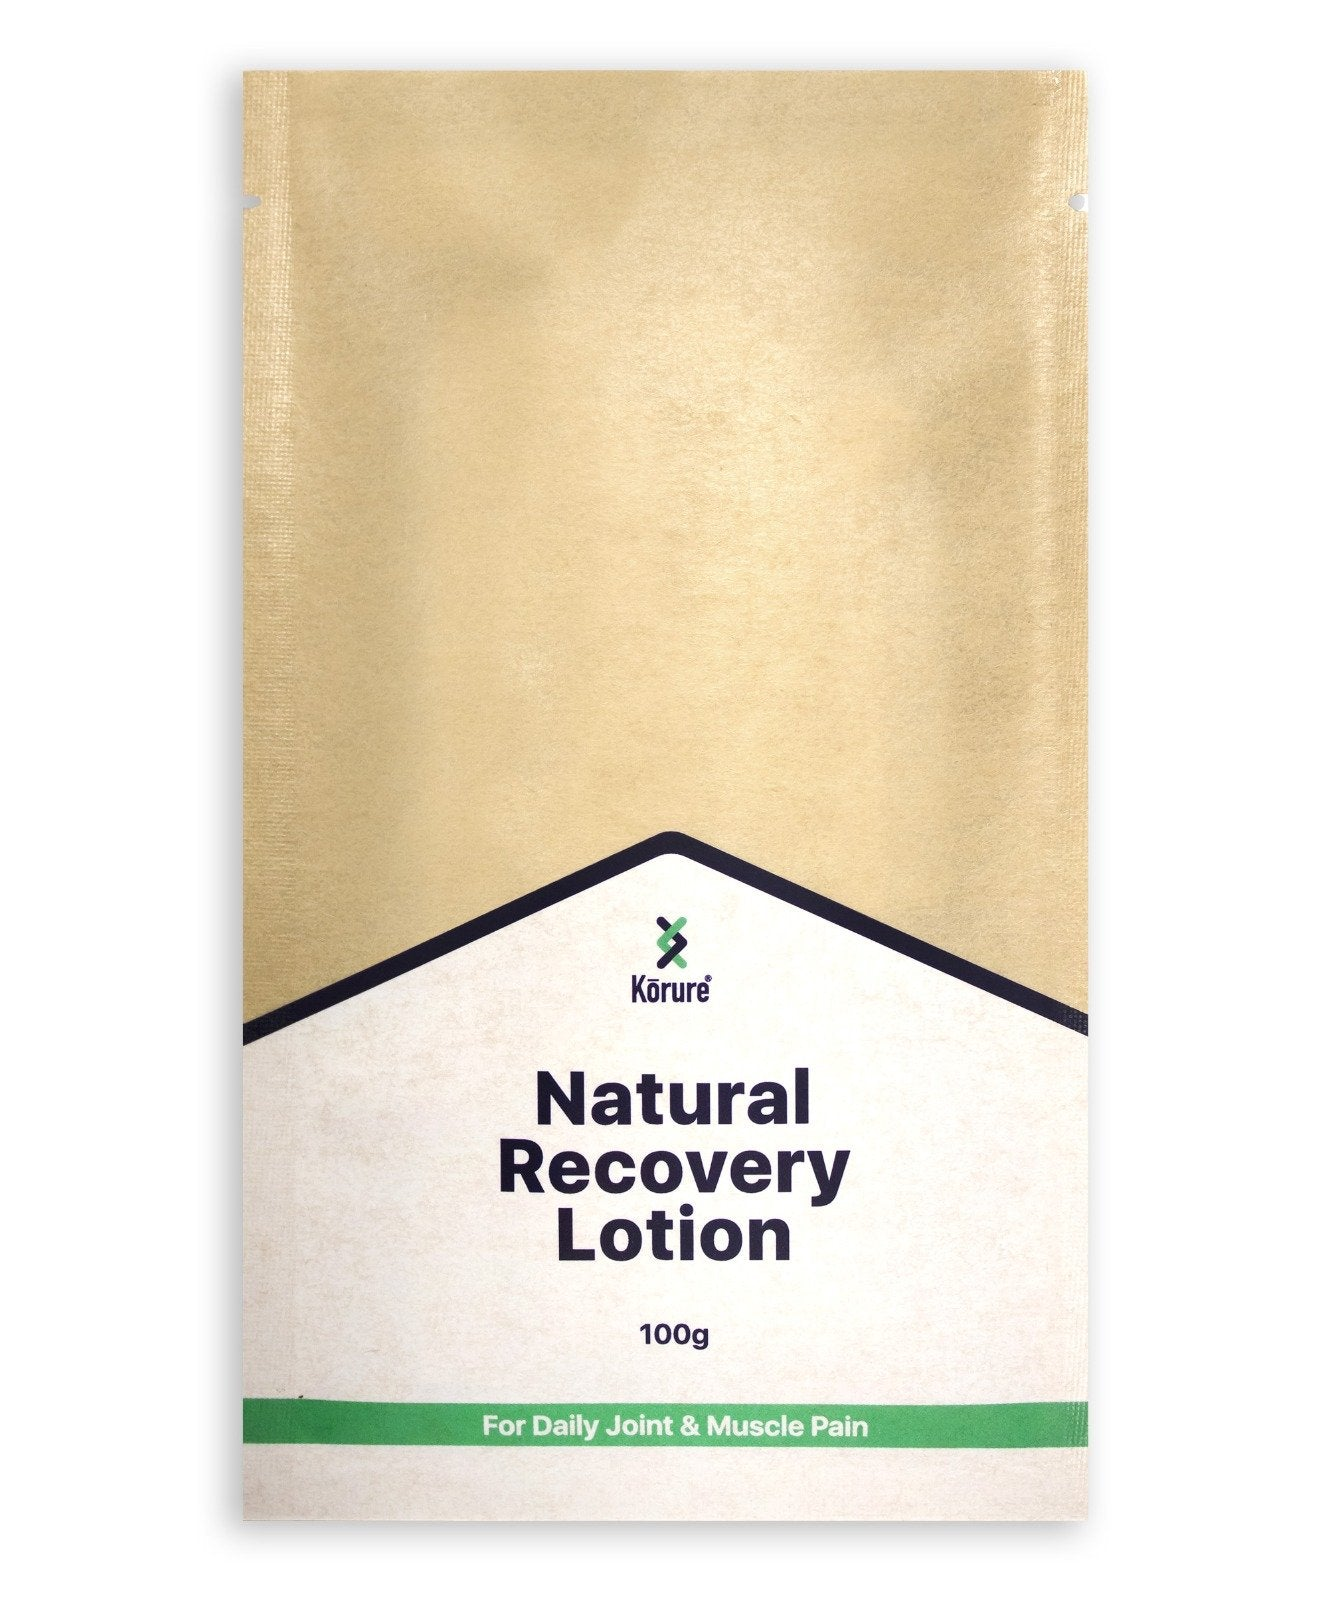 Refill Pouch - Natural Recovery Lotion - 100g